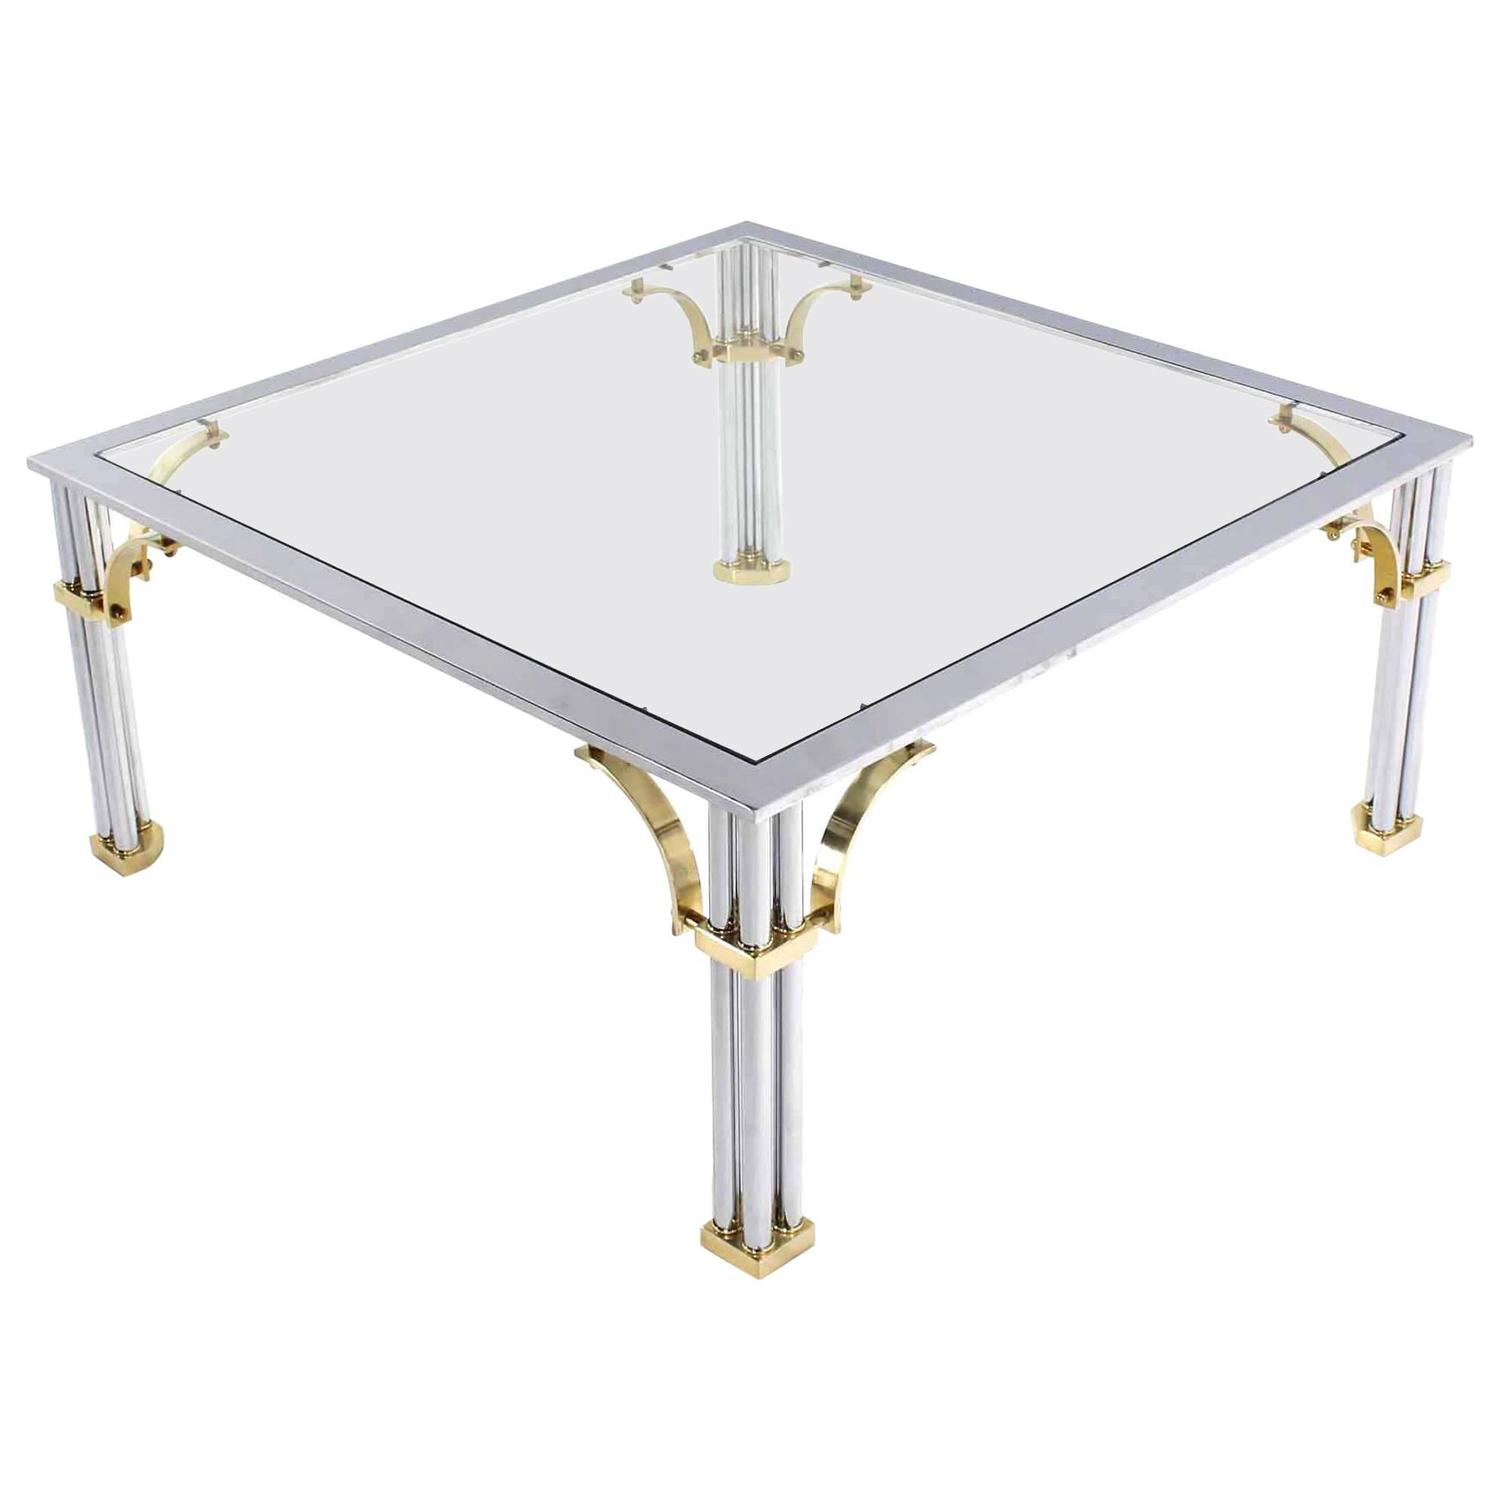 Chrome Coffee Table With Glass Top: Chrome Brass Glass Top Square Coffee Table For Sale At 1stdibs